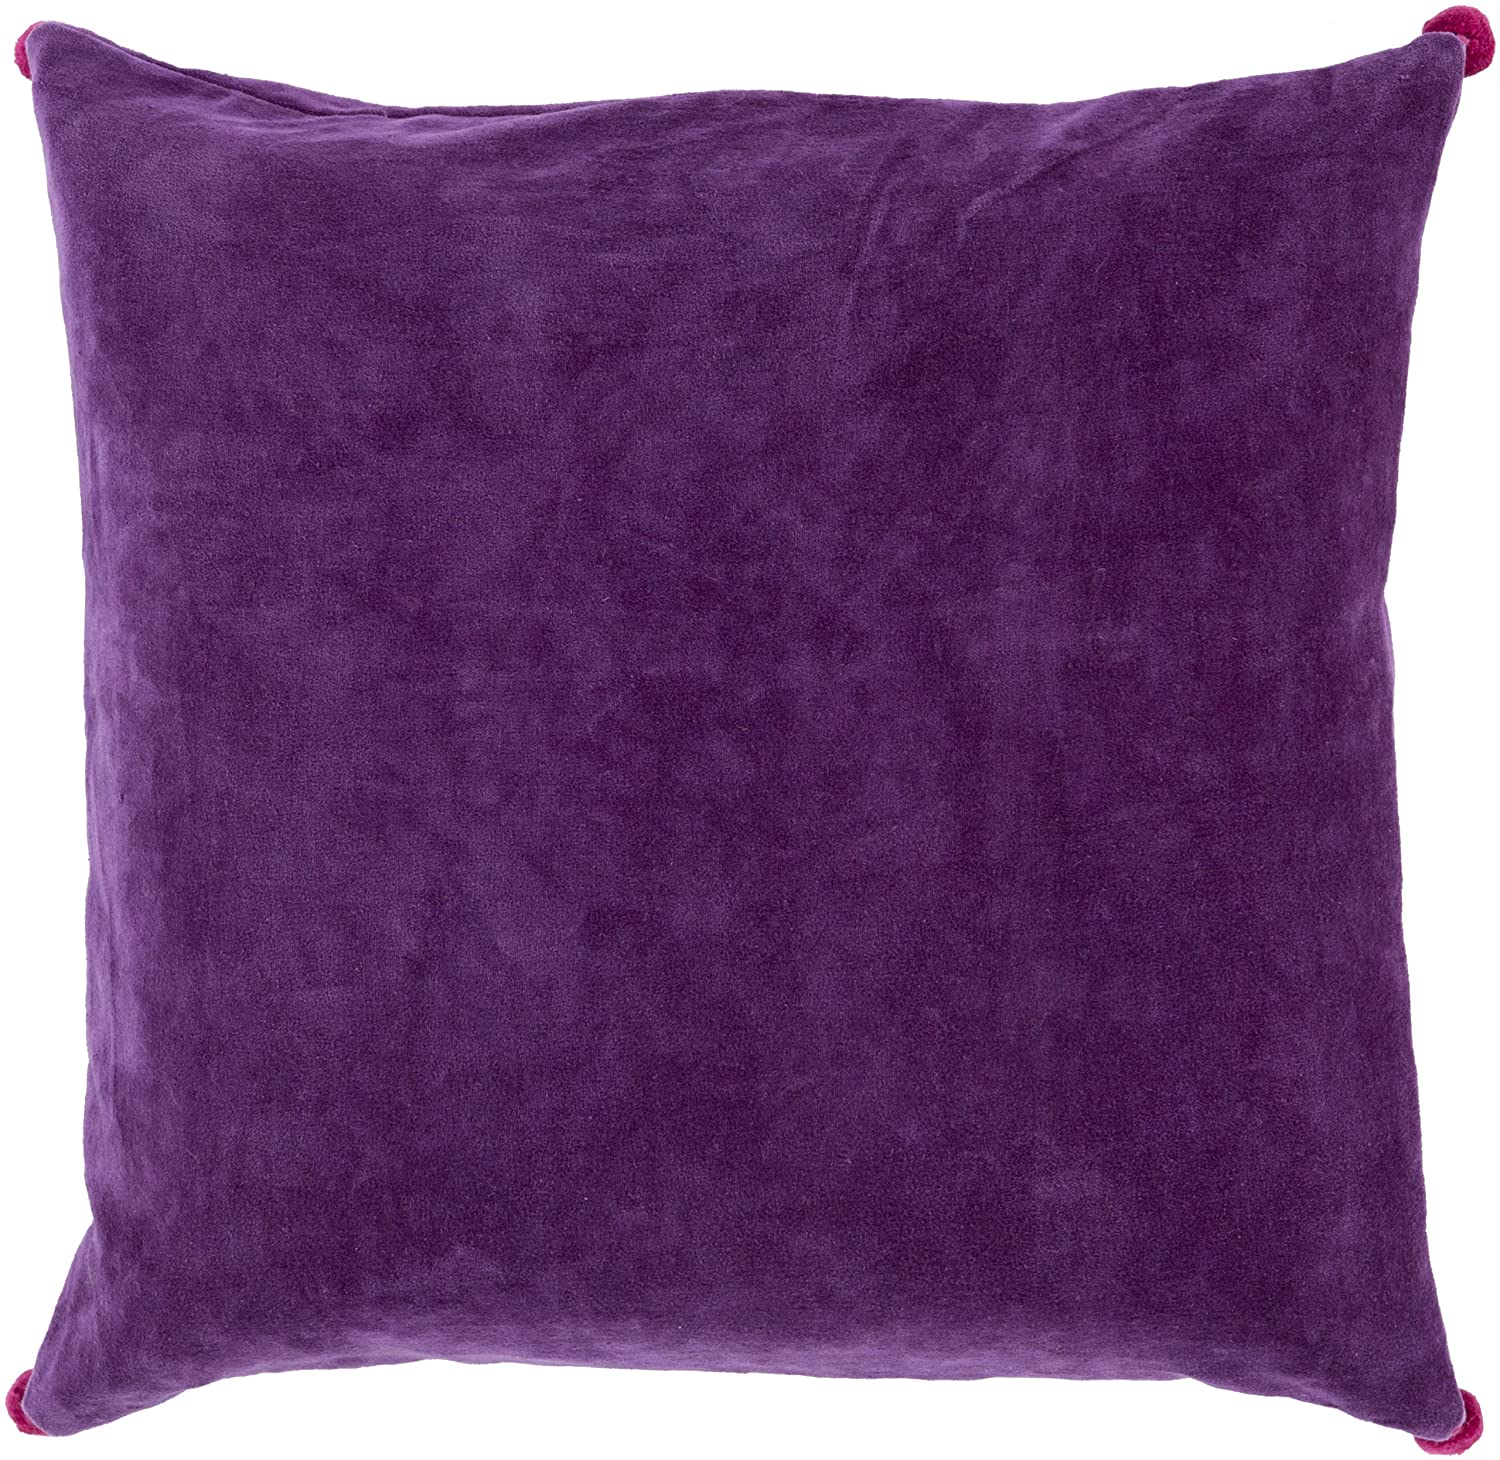 Surya VP002-1818D Down Fill Pillow, 18-Inch by 18-Inch, Violet/Magenta